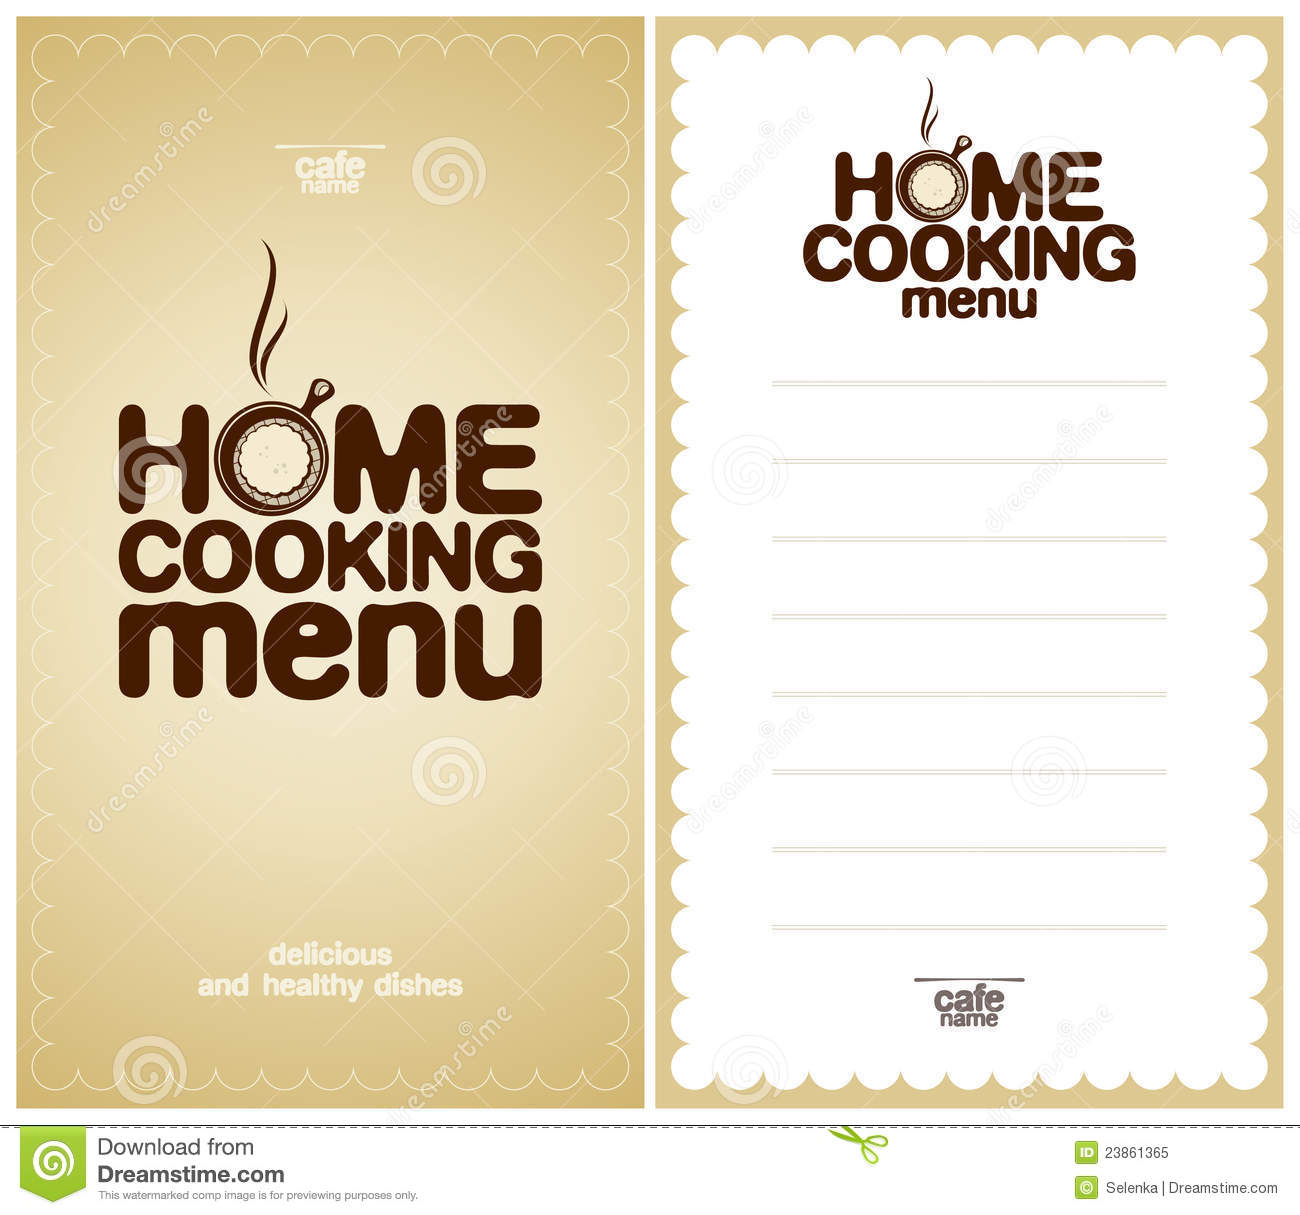 ... Menu Design Template. Royalty Free Stock Photo - Image: 23861365